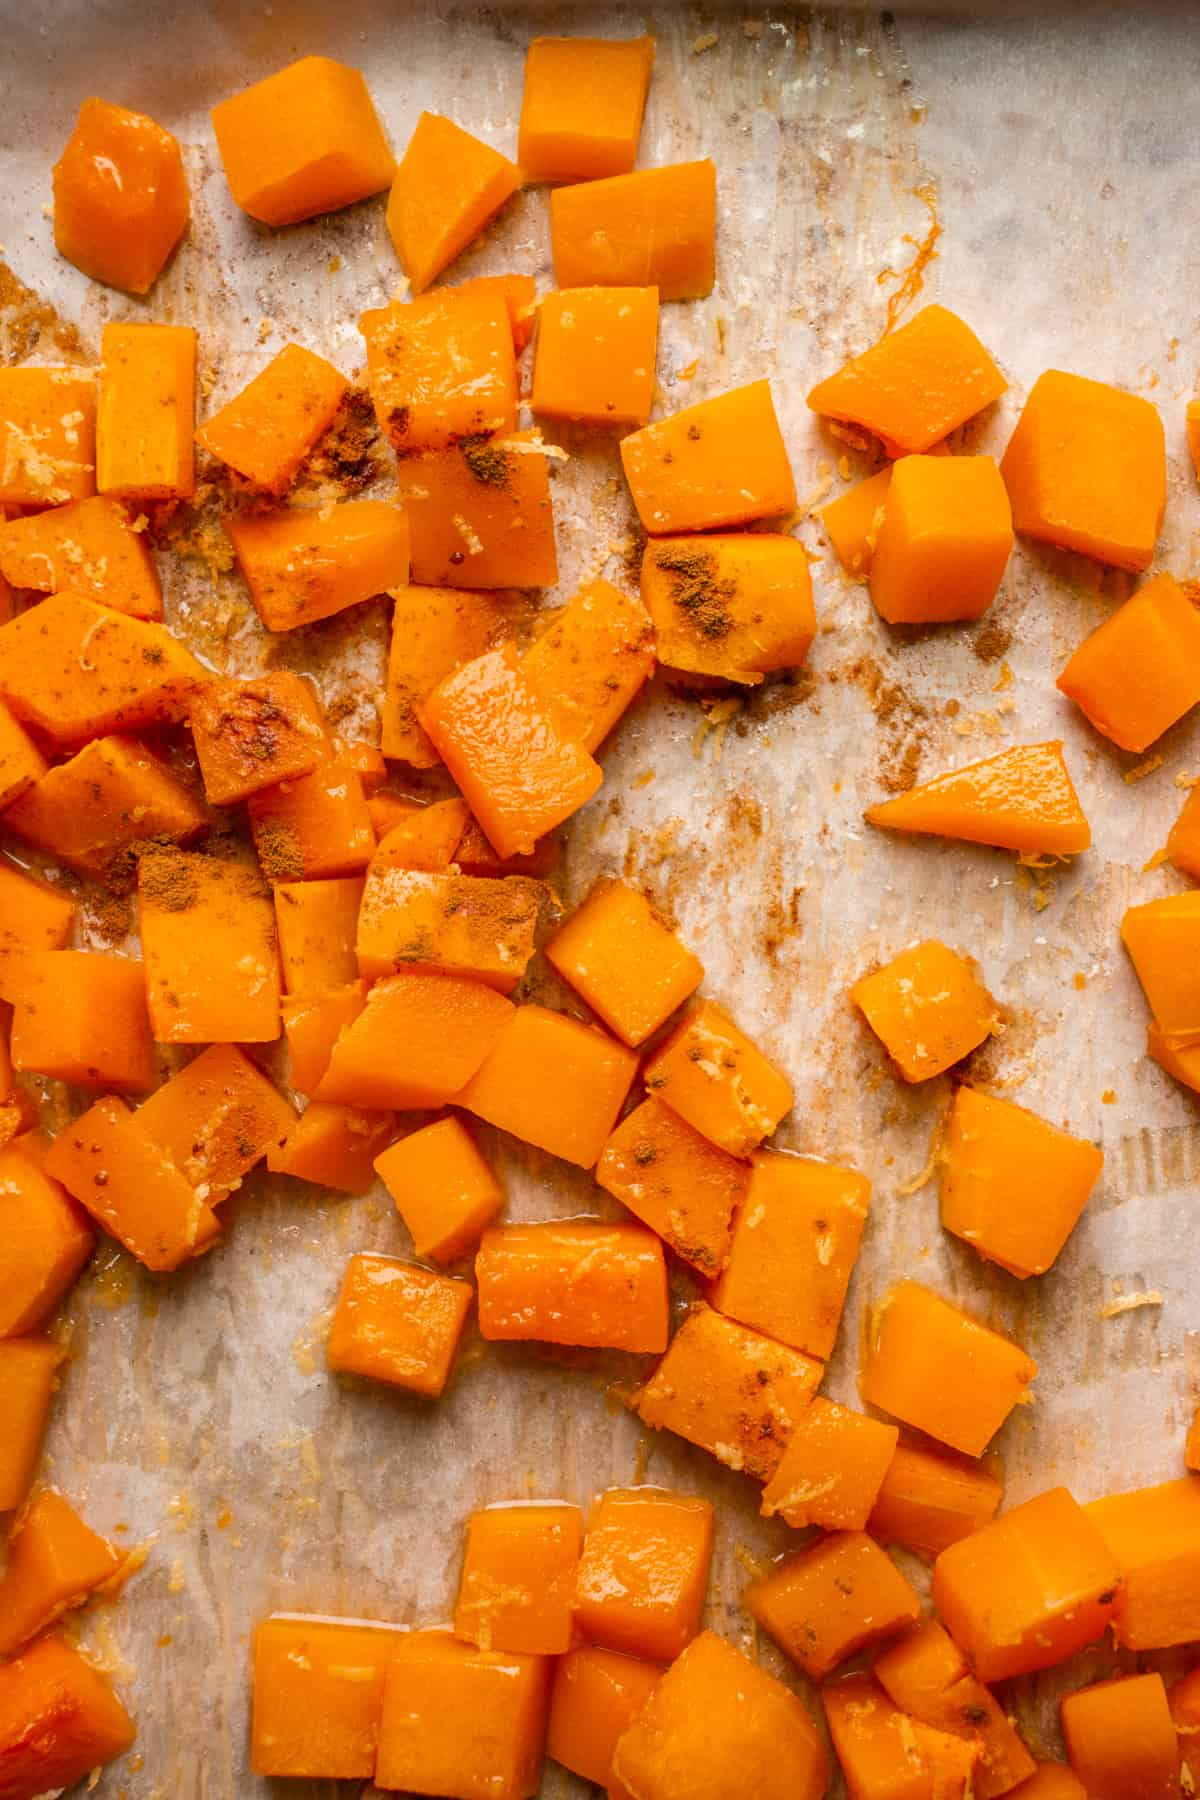 Baked butternut squash with cinnamon and lemon zest on a baking sheet